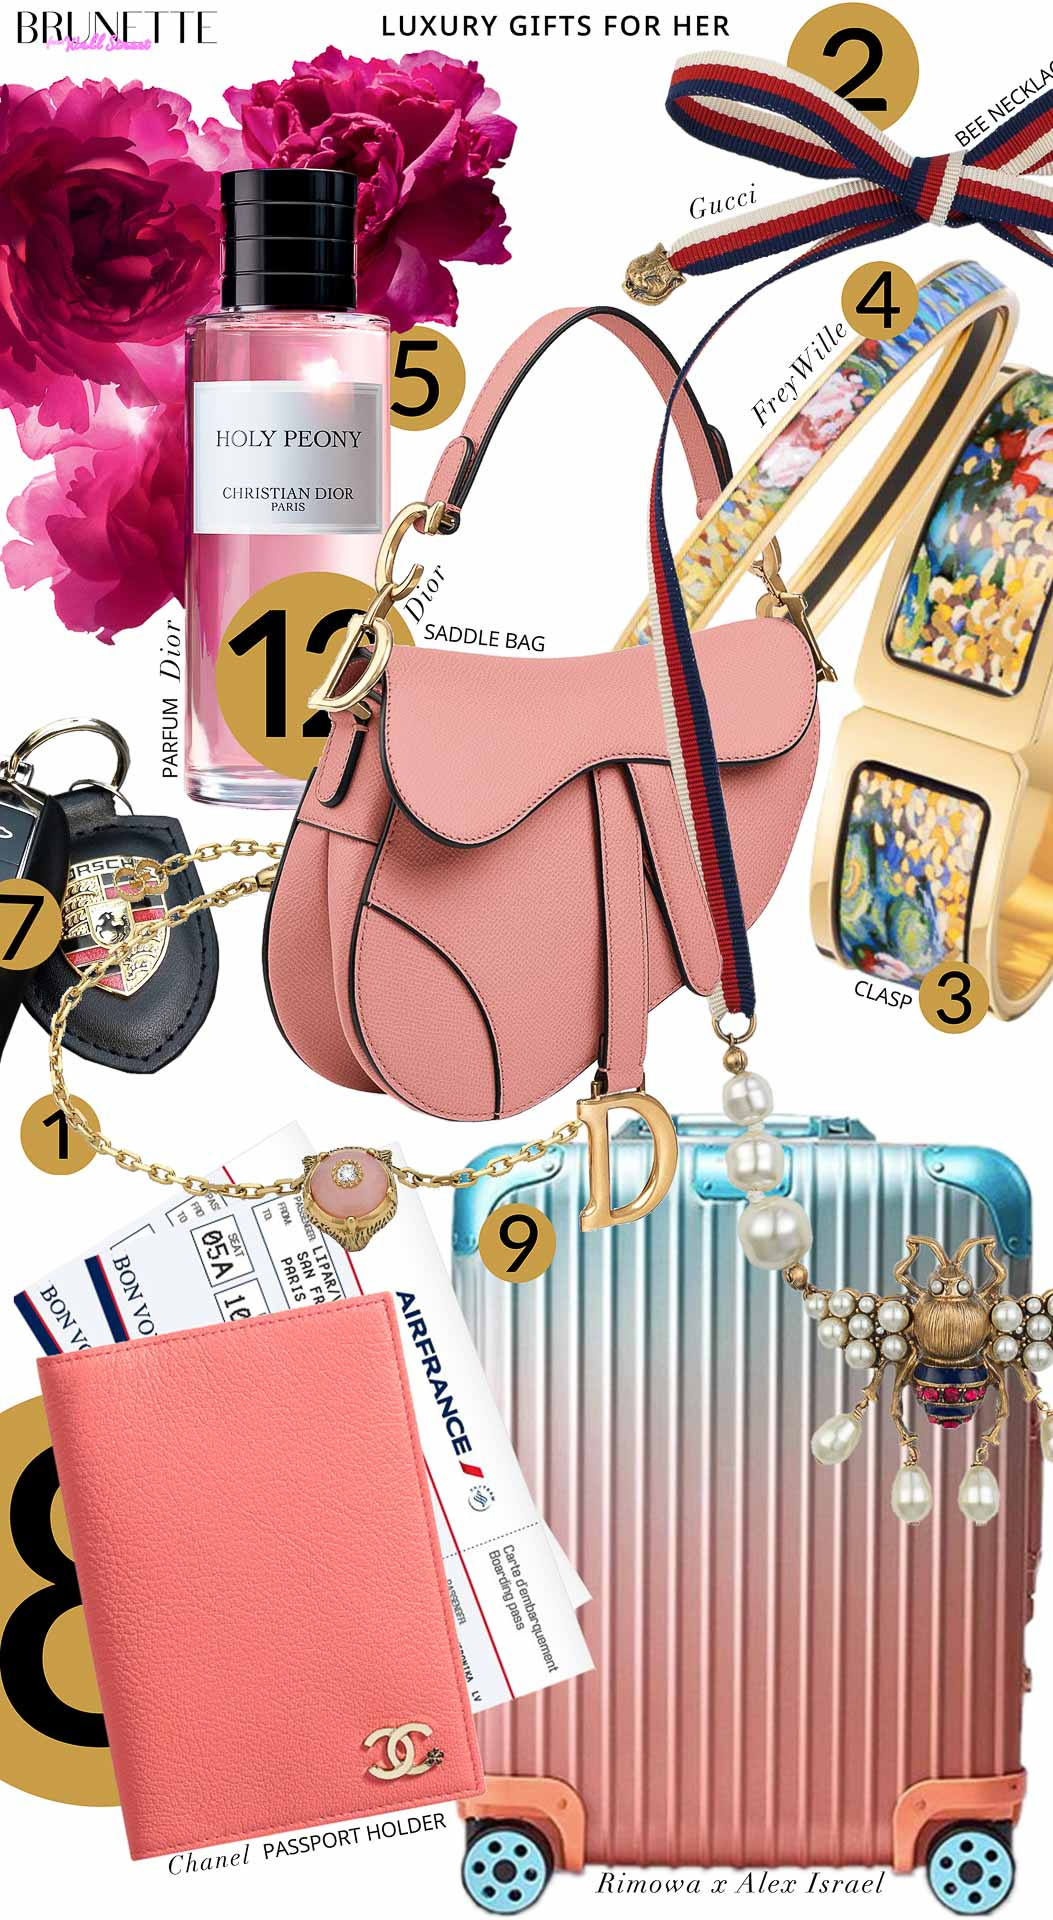 Brunette from Wall Street Luxury gifts for her Rimowa x Alex Israel trunk Chanel passport holder plane tickets to Paris Dior Holly Peony Dior pink saddle bag Gucci Bee necklace Frey Wille bangle clasp